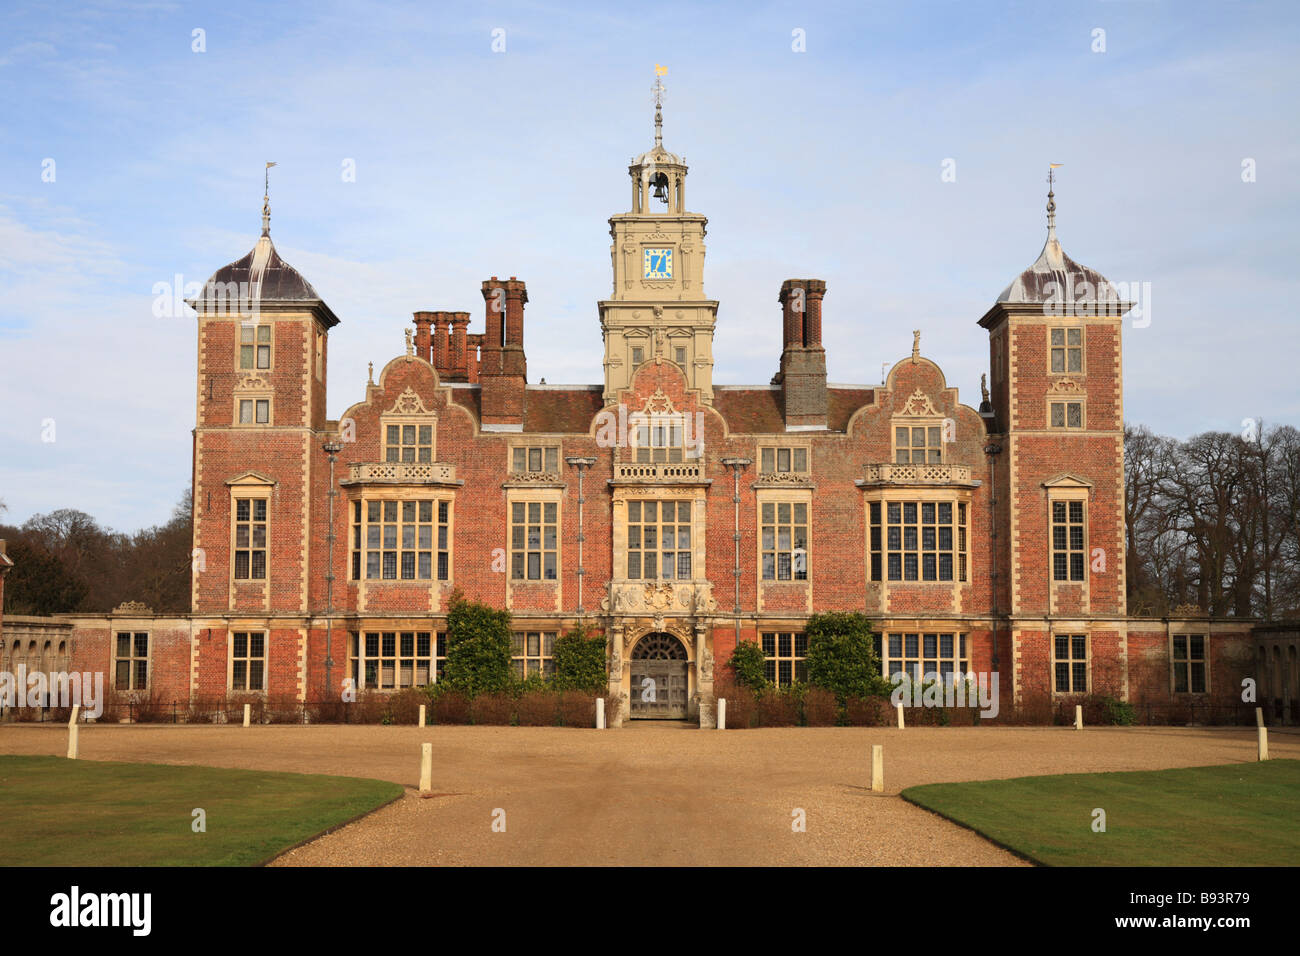 'Blickling Hall' National Trust property North Norfolk.  home, gardens and park. England. - Stock Image